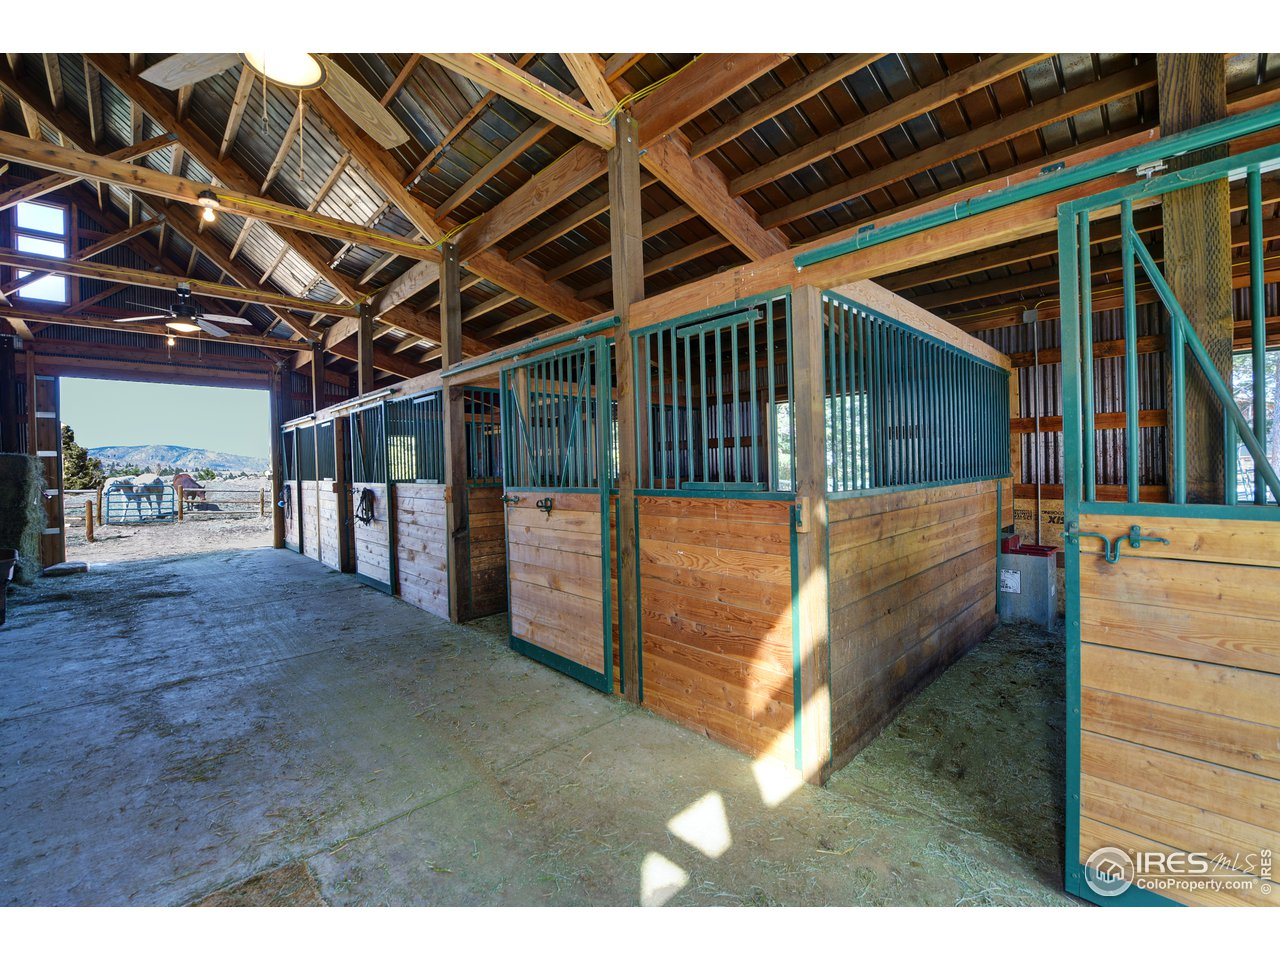 1,600 sqft, 4 stall barn with lounge area